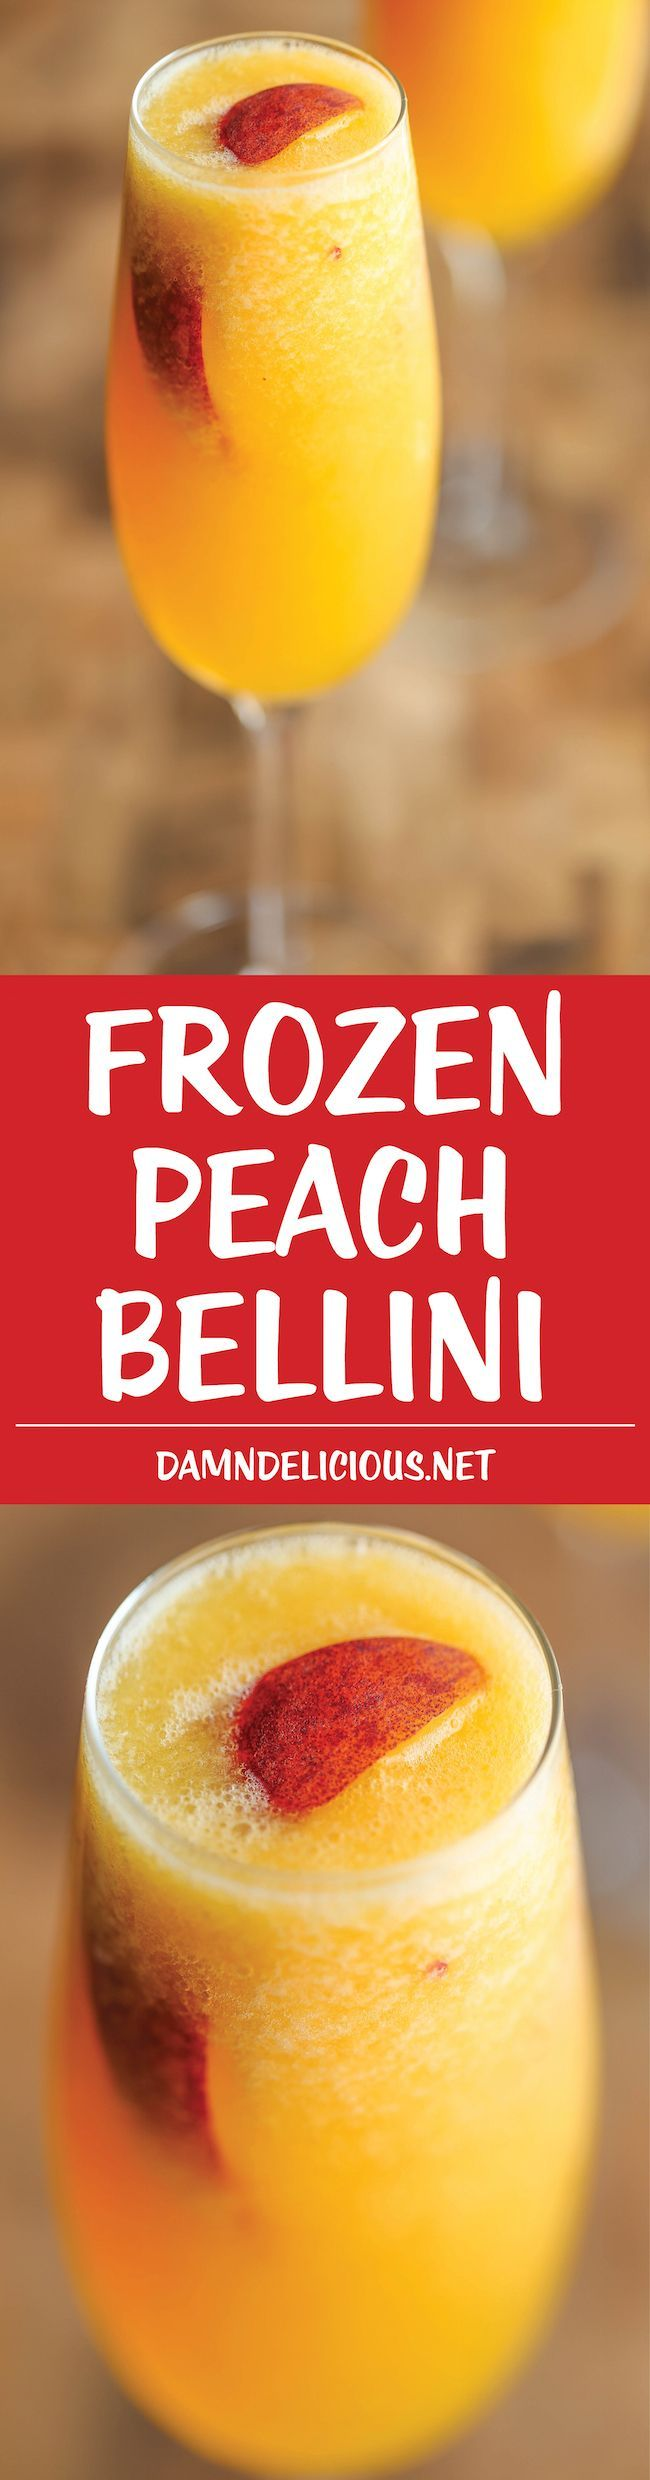 Frozen Peach Bellini - Wonderfully light, refreshing, and bubbly peach bellinis - and all you need is 3 ingredients and 5 minutes! So simple and easy!: